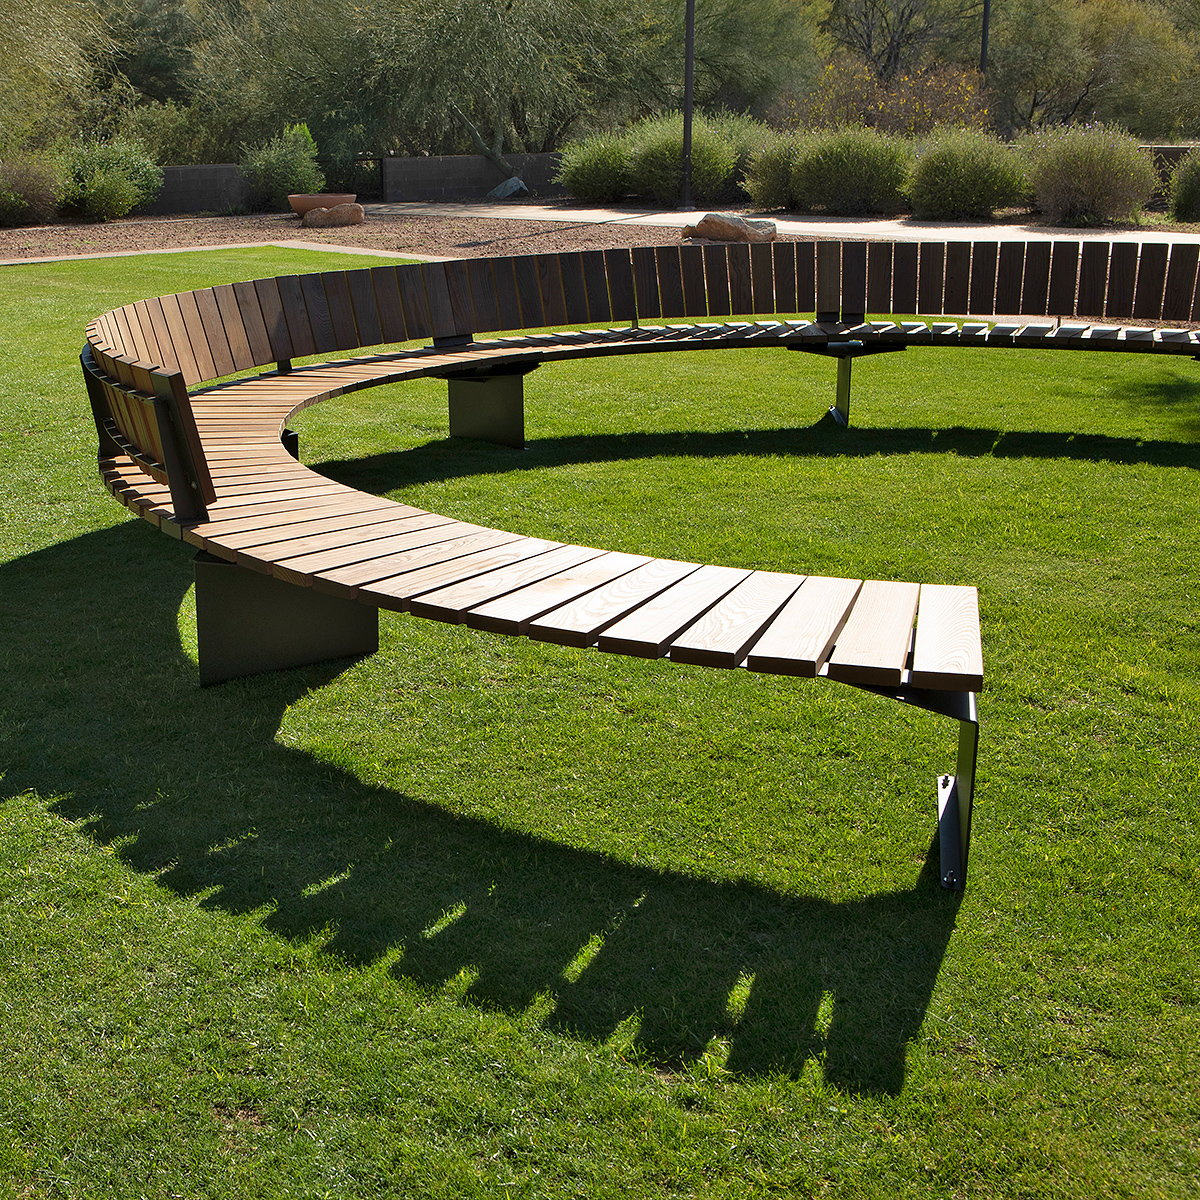 Landscape Forms Debuts 'Link' Outdoor Seating System